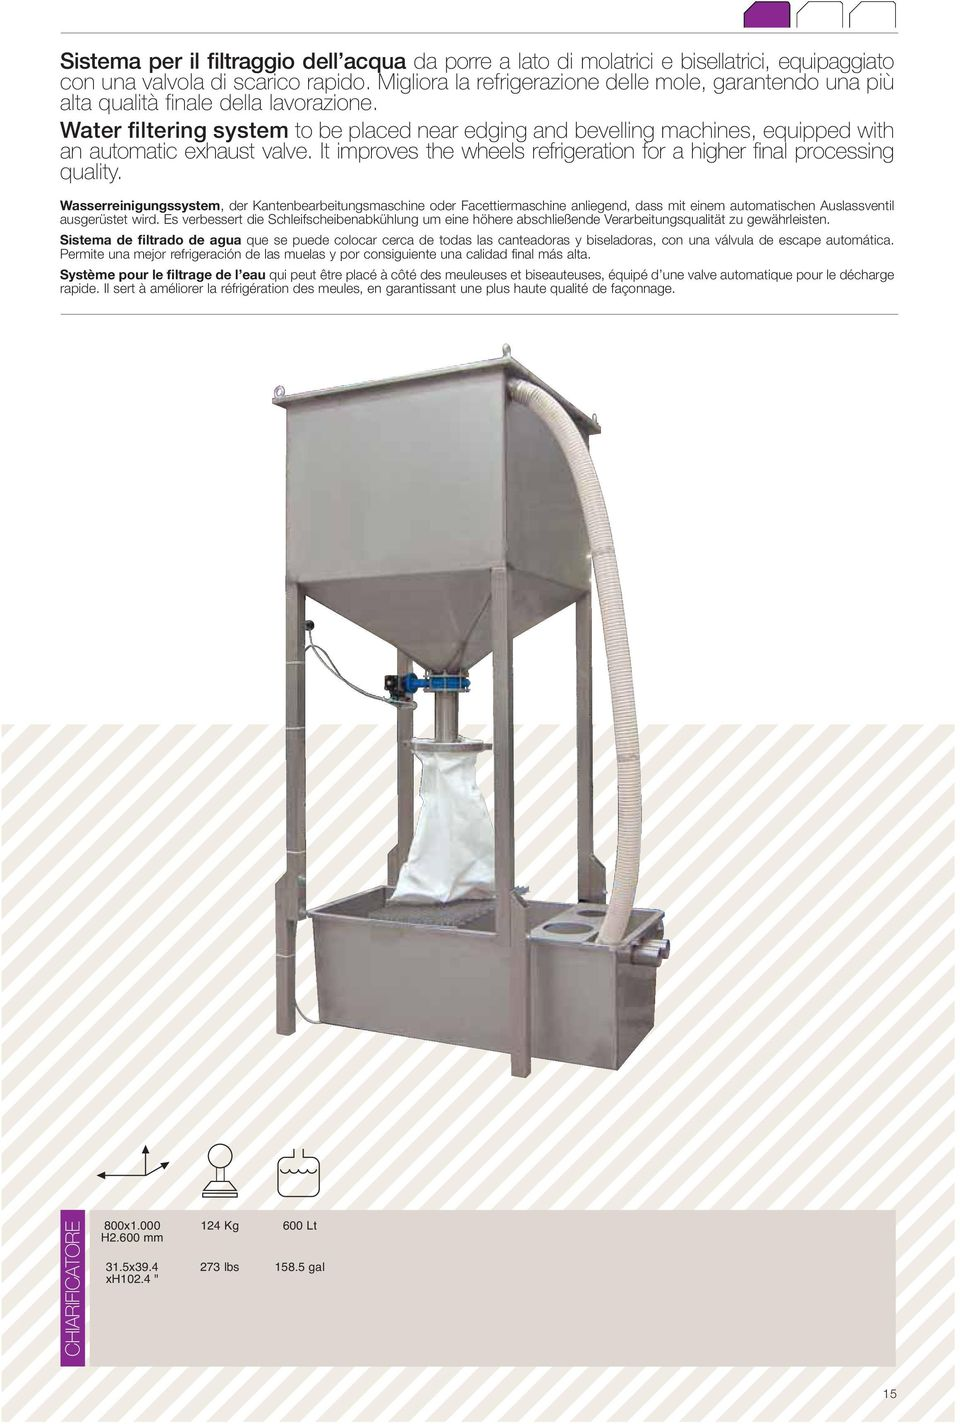 Water filtering system to be placed near edging and bevelling machines, equipped with an automatic exhaust valve. It improves the wheels refrigeration for a higher final processing quality.